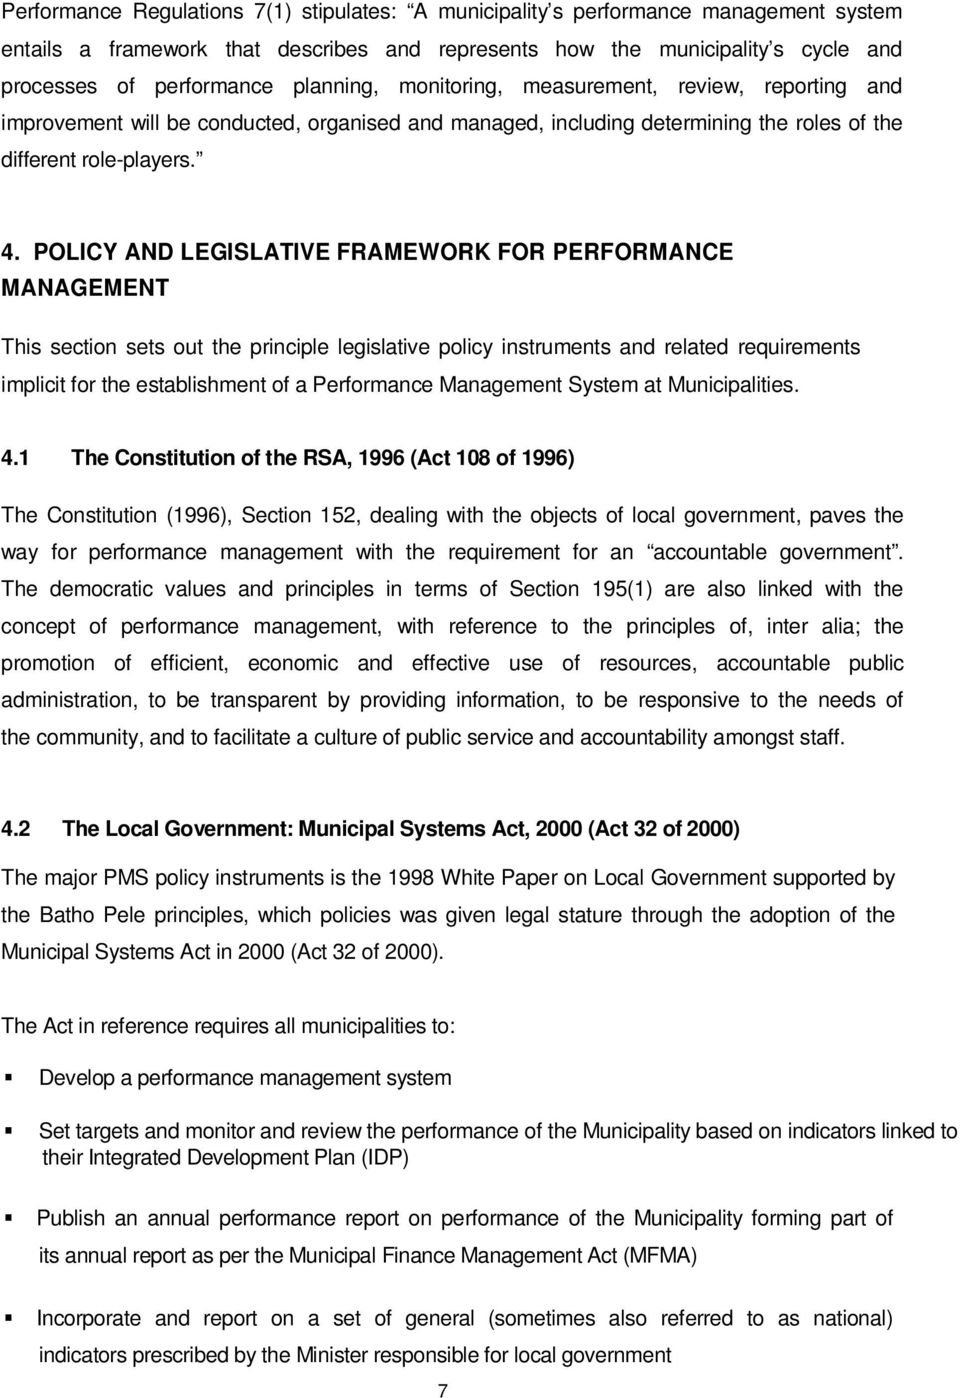 POLICY AND LEGISLATIVE FRAMEWORK FOR PERFORMANCE MANAGEMENT This section sets out the principle legislative policy instruments and related requirements implicit for the establishment of a Performance